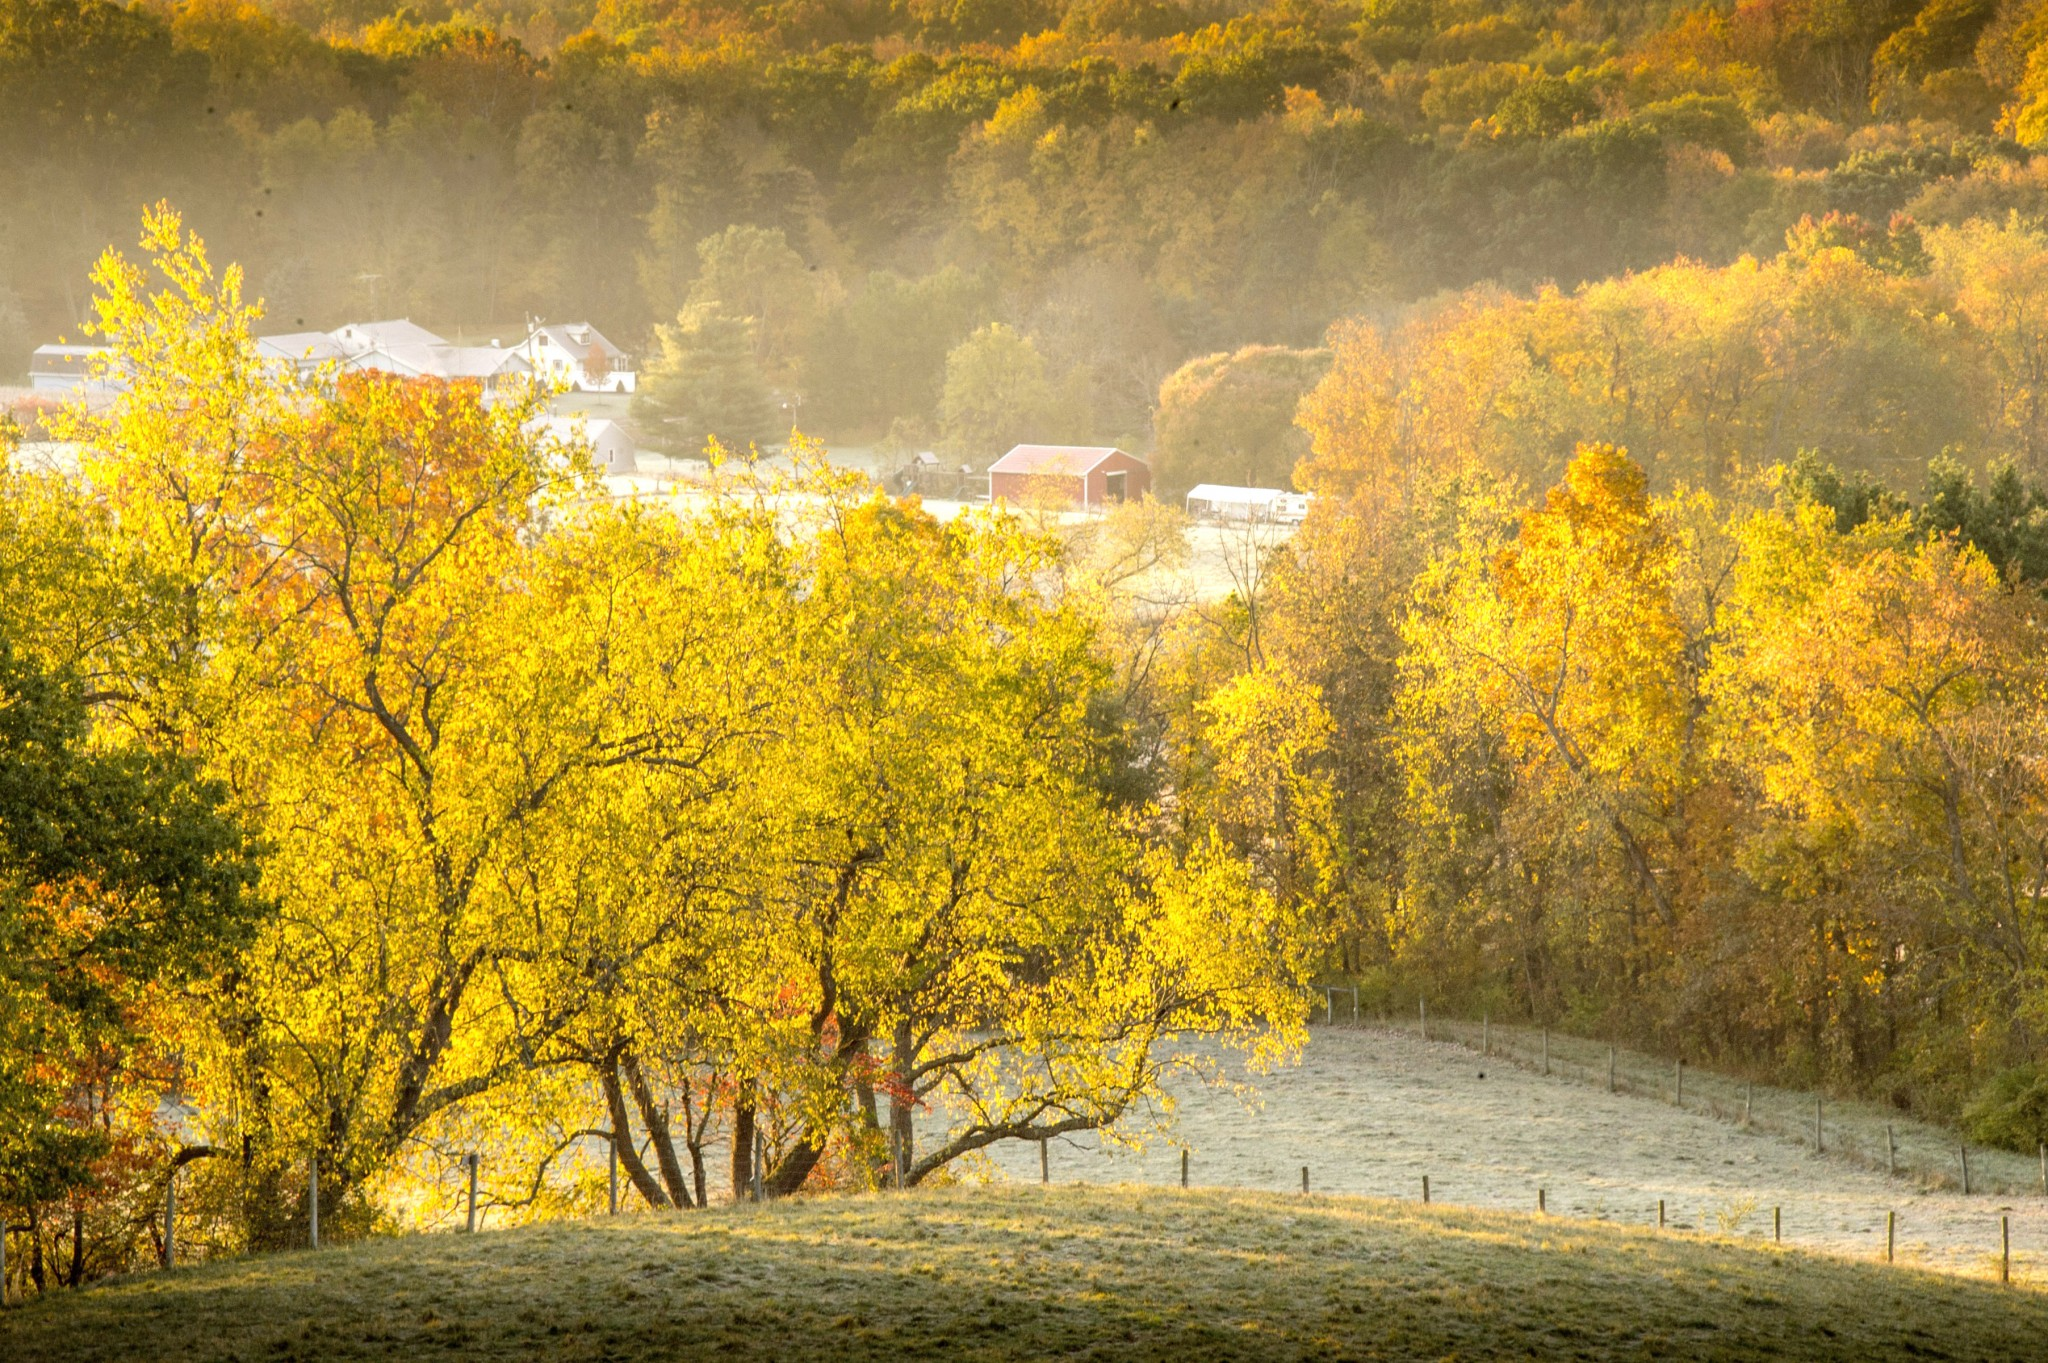 The view from Malabar Farm State Park's Mt. Jeez on a frosty October morning. The region's fall colors will hang on into early November before the holiday season settle in. (Photo by Art Weber)